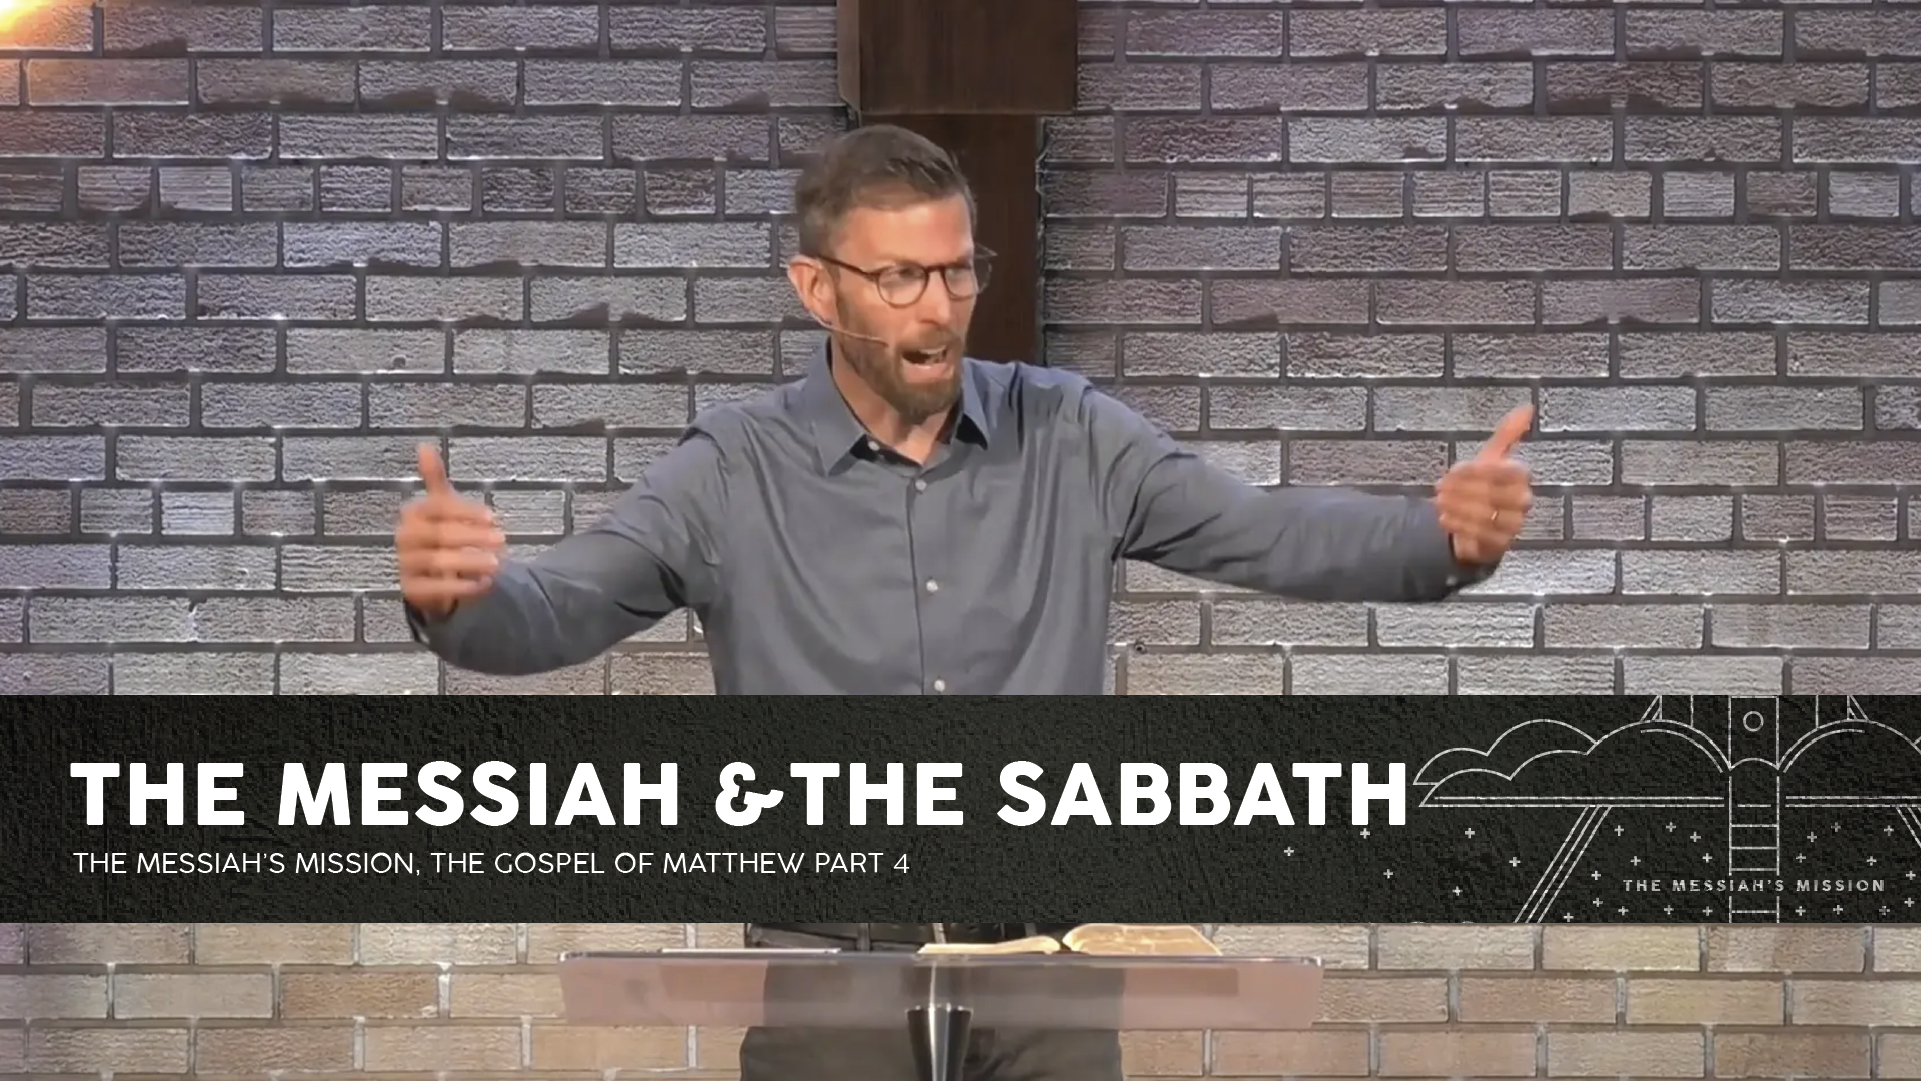 The Messiah and the Sabbath